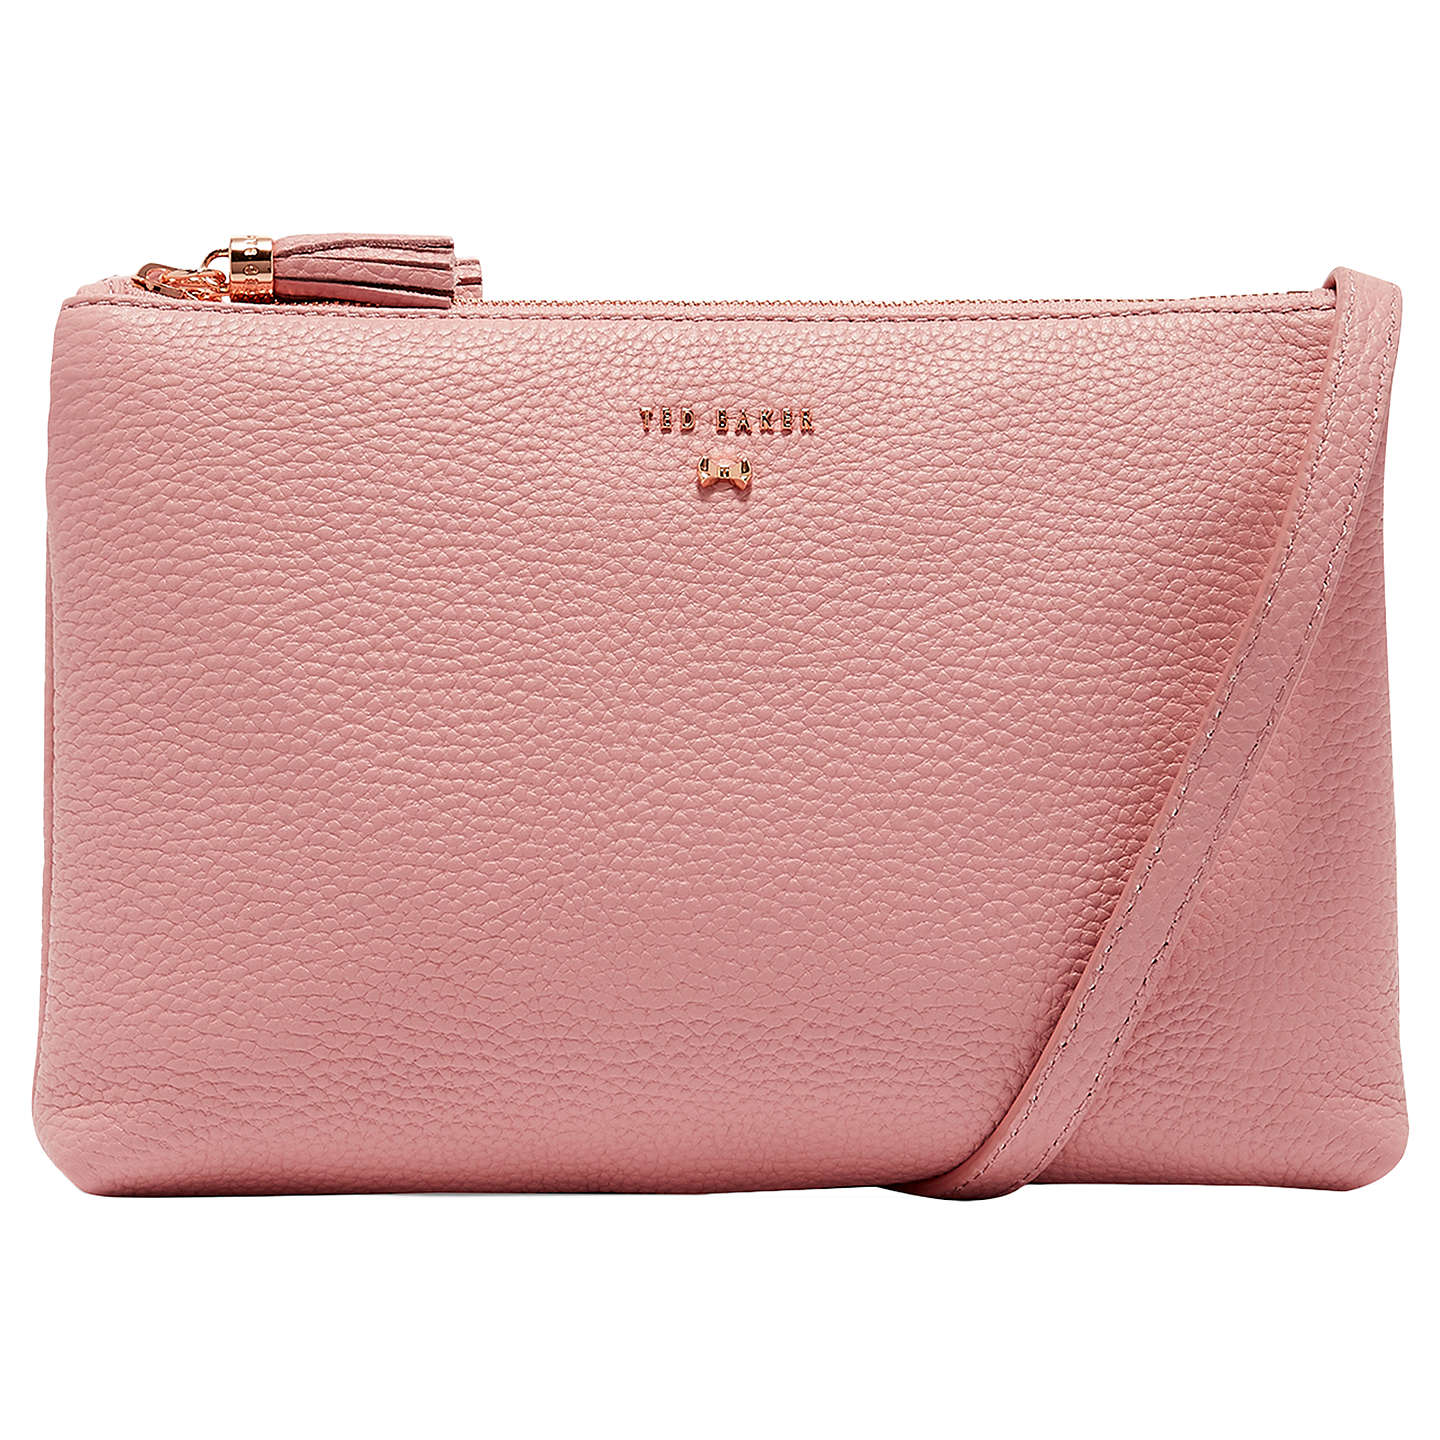 Ruby Wedding Gifts John Lewis: Ted Baker Suzette Leather Double Zip Cross Body Bag At